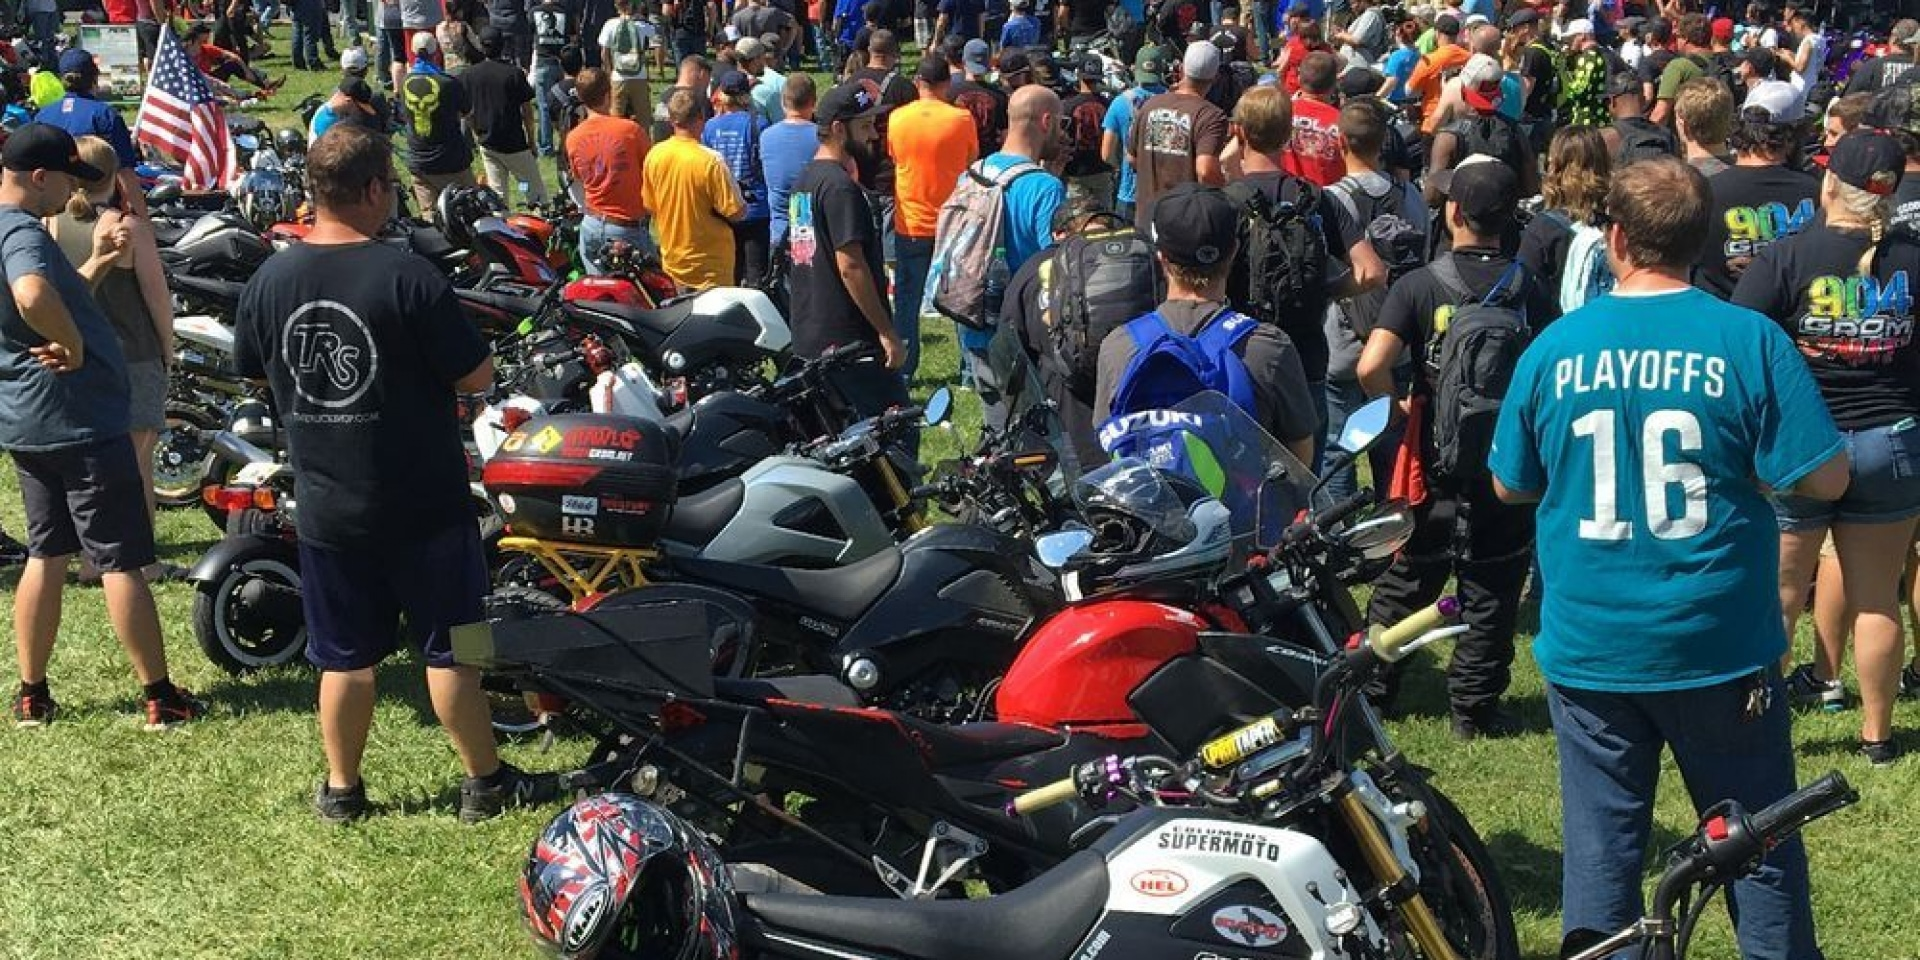 Small-Bore Motorcycle Festival in the Smoky Mountains 美國大煙山 小車狂歡節